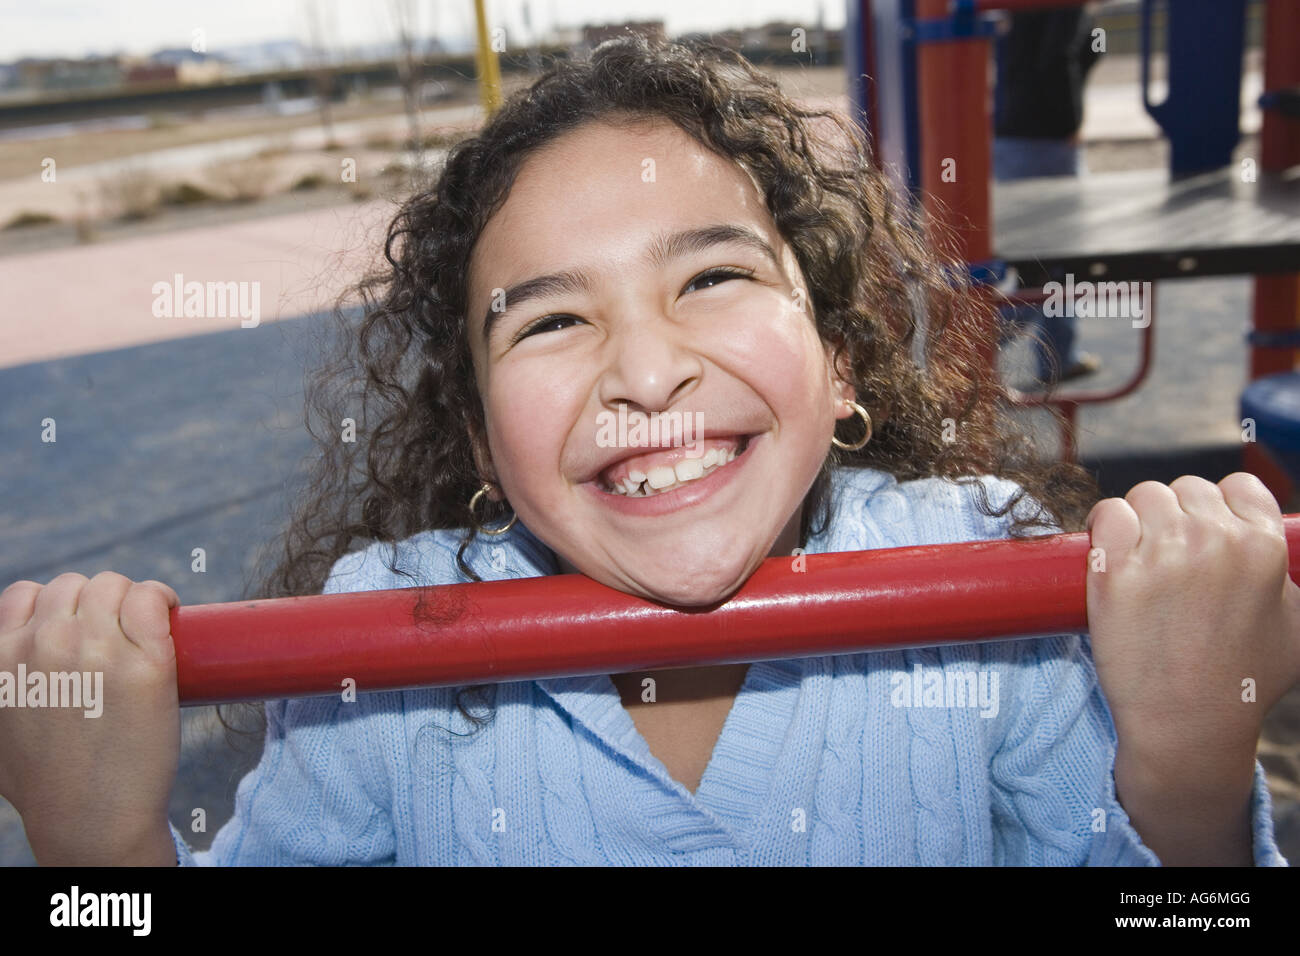 ten year old girl hanging on to bar on school playground, big bright toothy grin - Stock Image